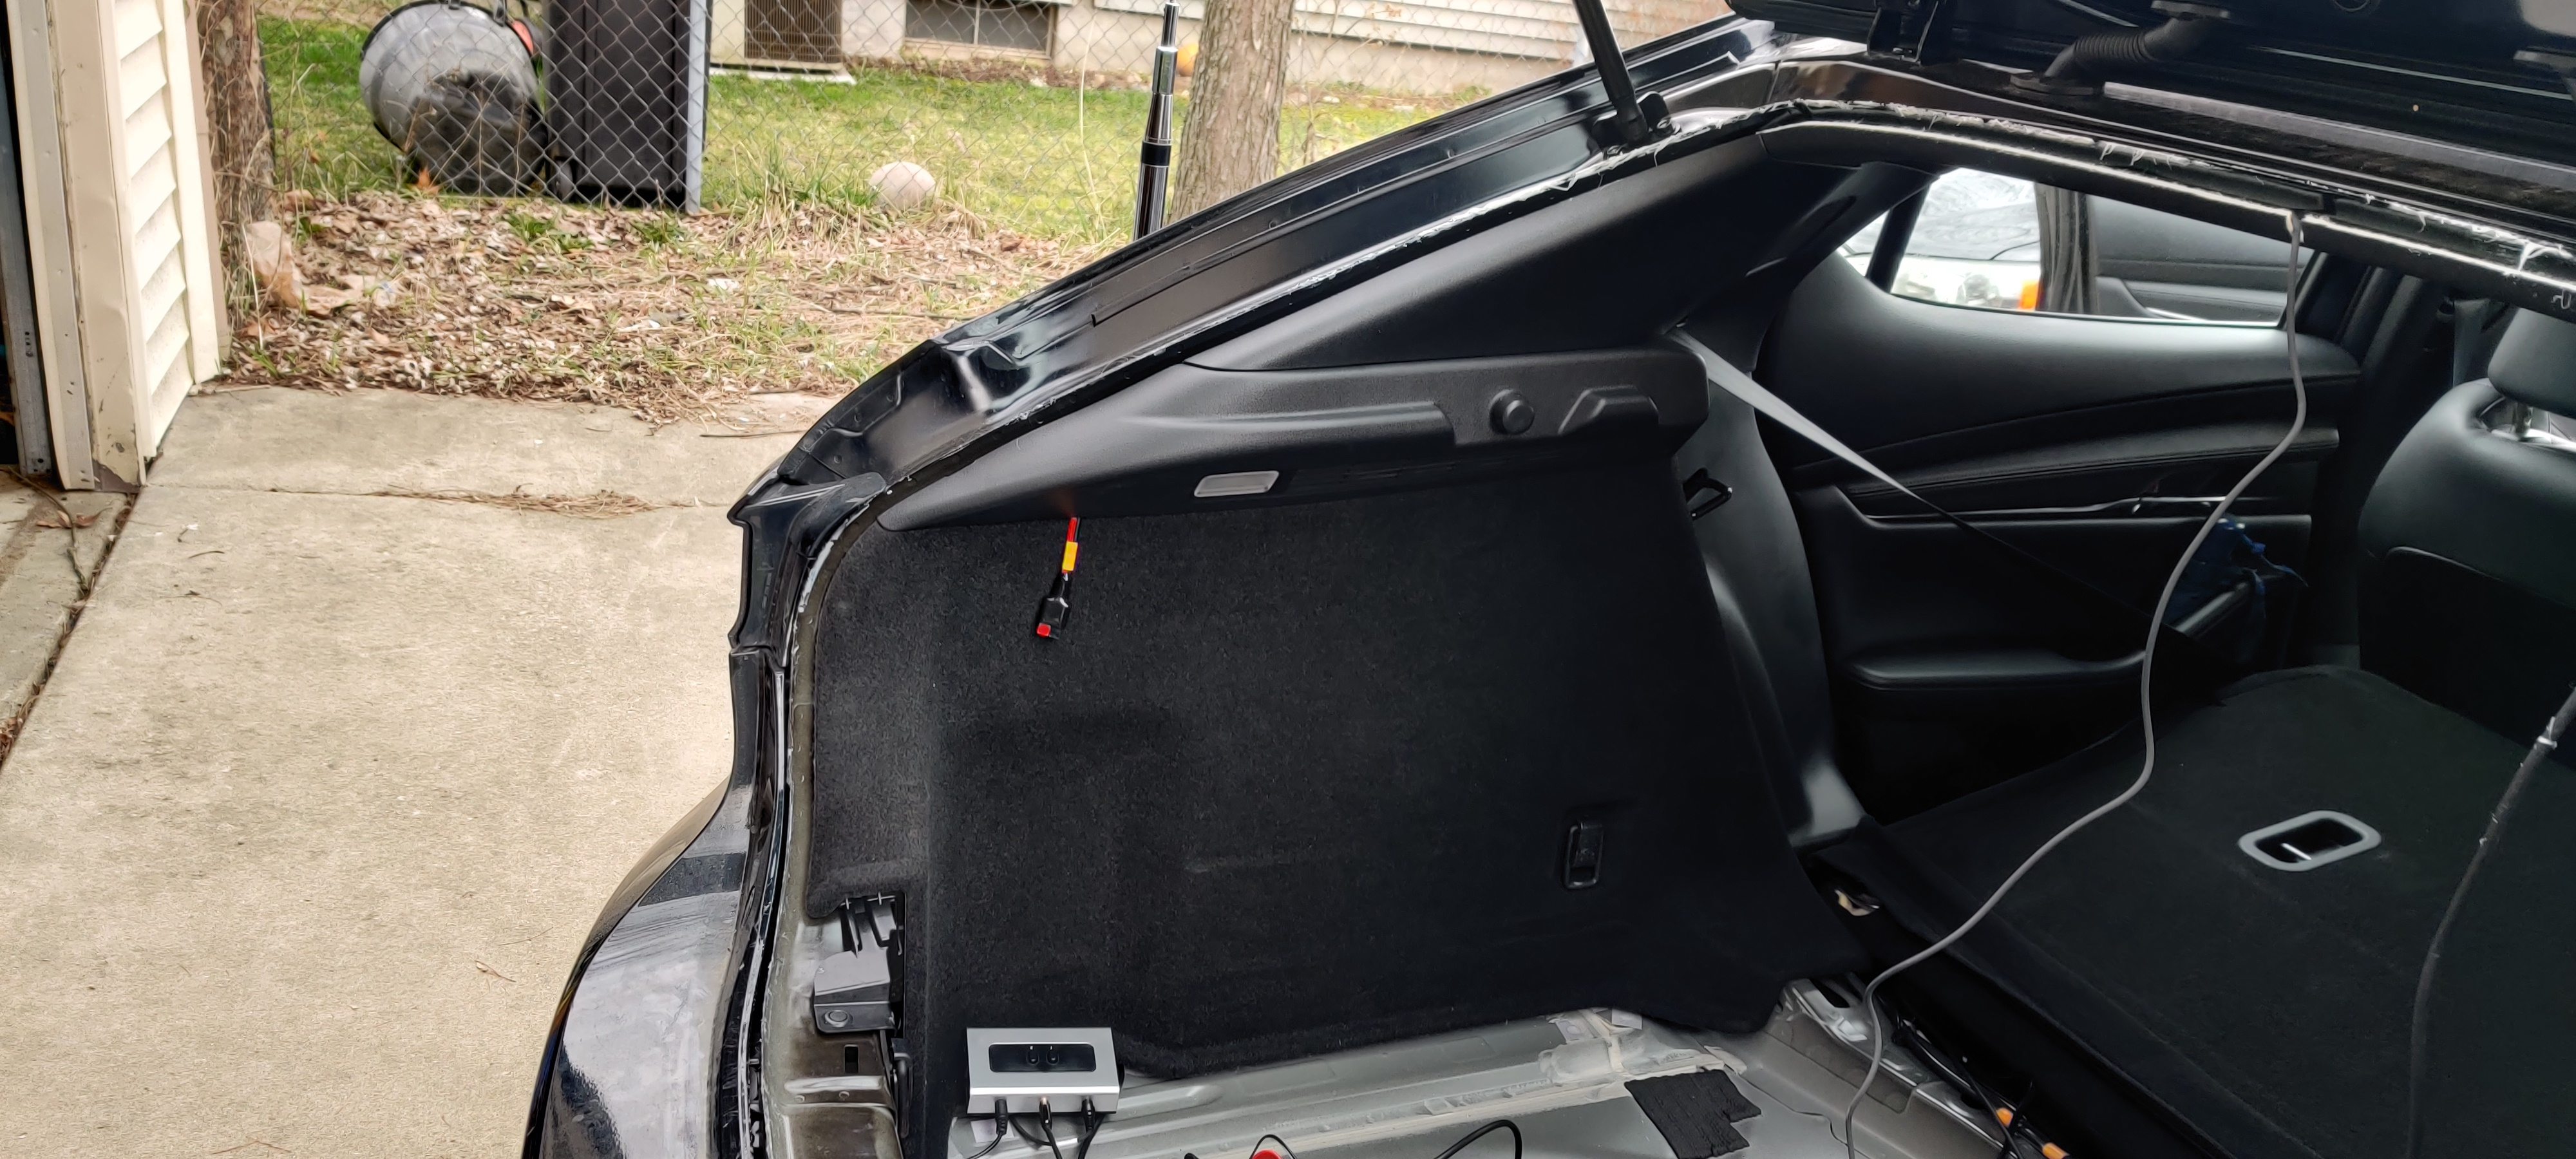 Driver's side rear quarterpanel, now with radio and subpanel installed. Note the 20A PowerPole drop tucked under the cargo area LED, and the 1-2 switch for external speaker (soon to be replaced with an actual mixer). Not shown (because framing!) programming cable extension.